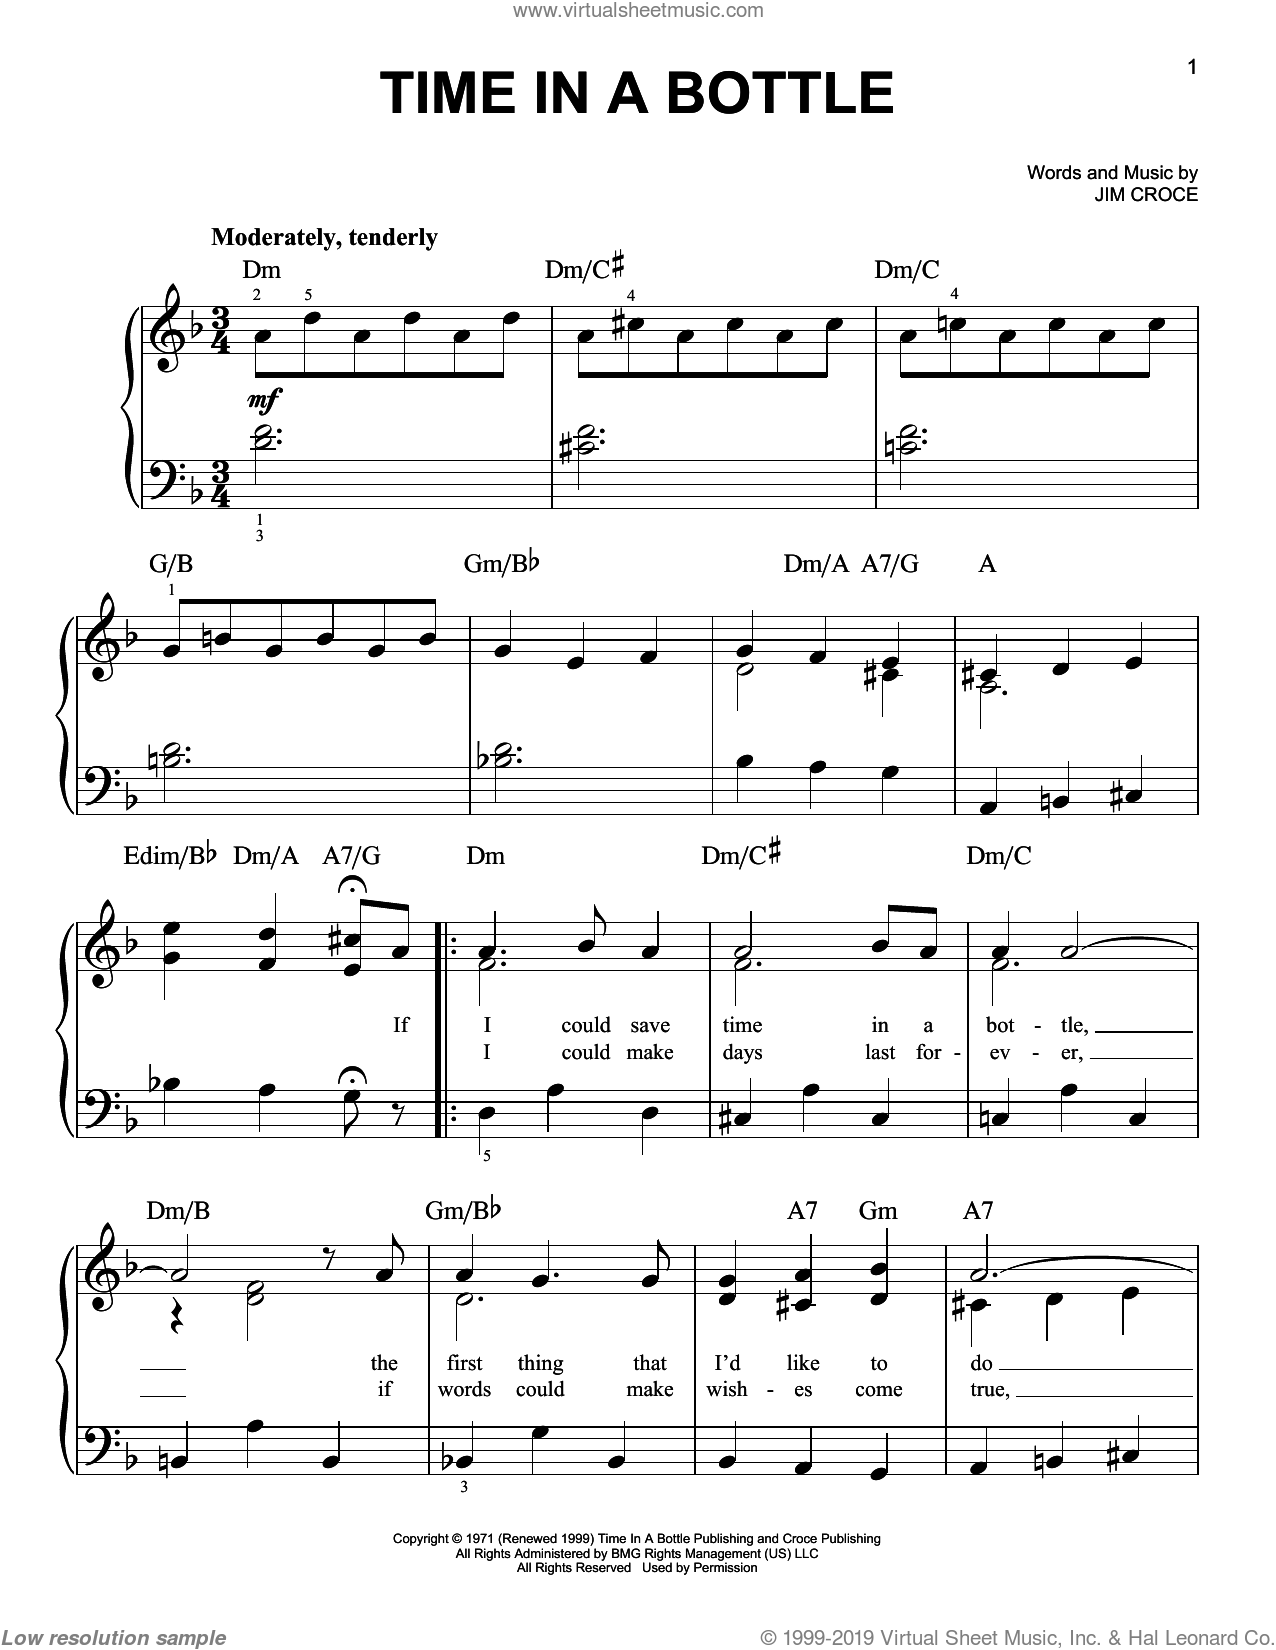 Time In A Bottle, (easy) sheet music for piano solo by Jim Croce, easy skill level